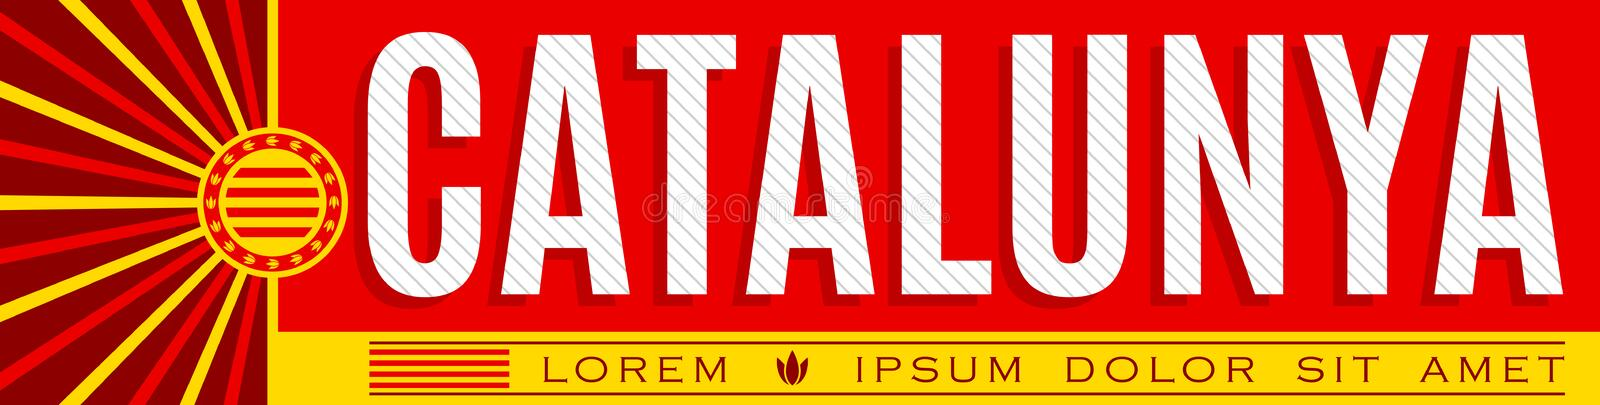 Catalunya, Catalonia Catalan text Banner design, typographic vector illustration. Eps available royalty free illustration